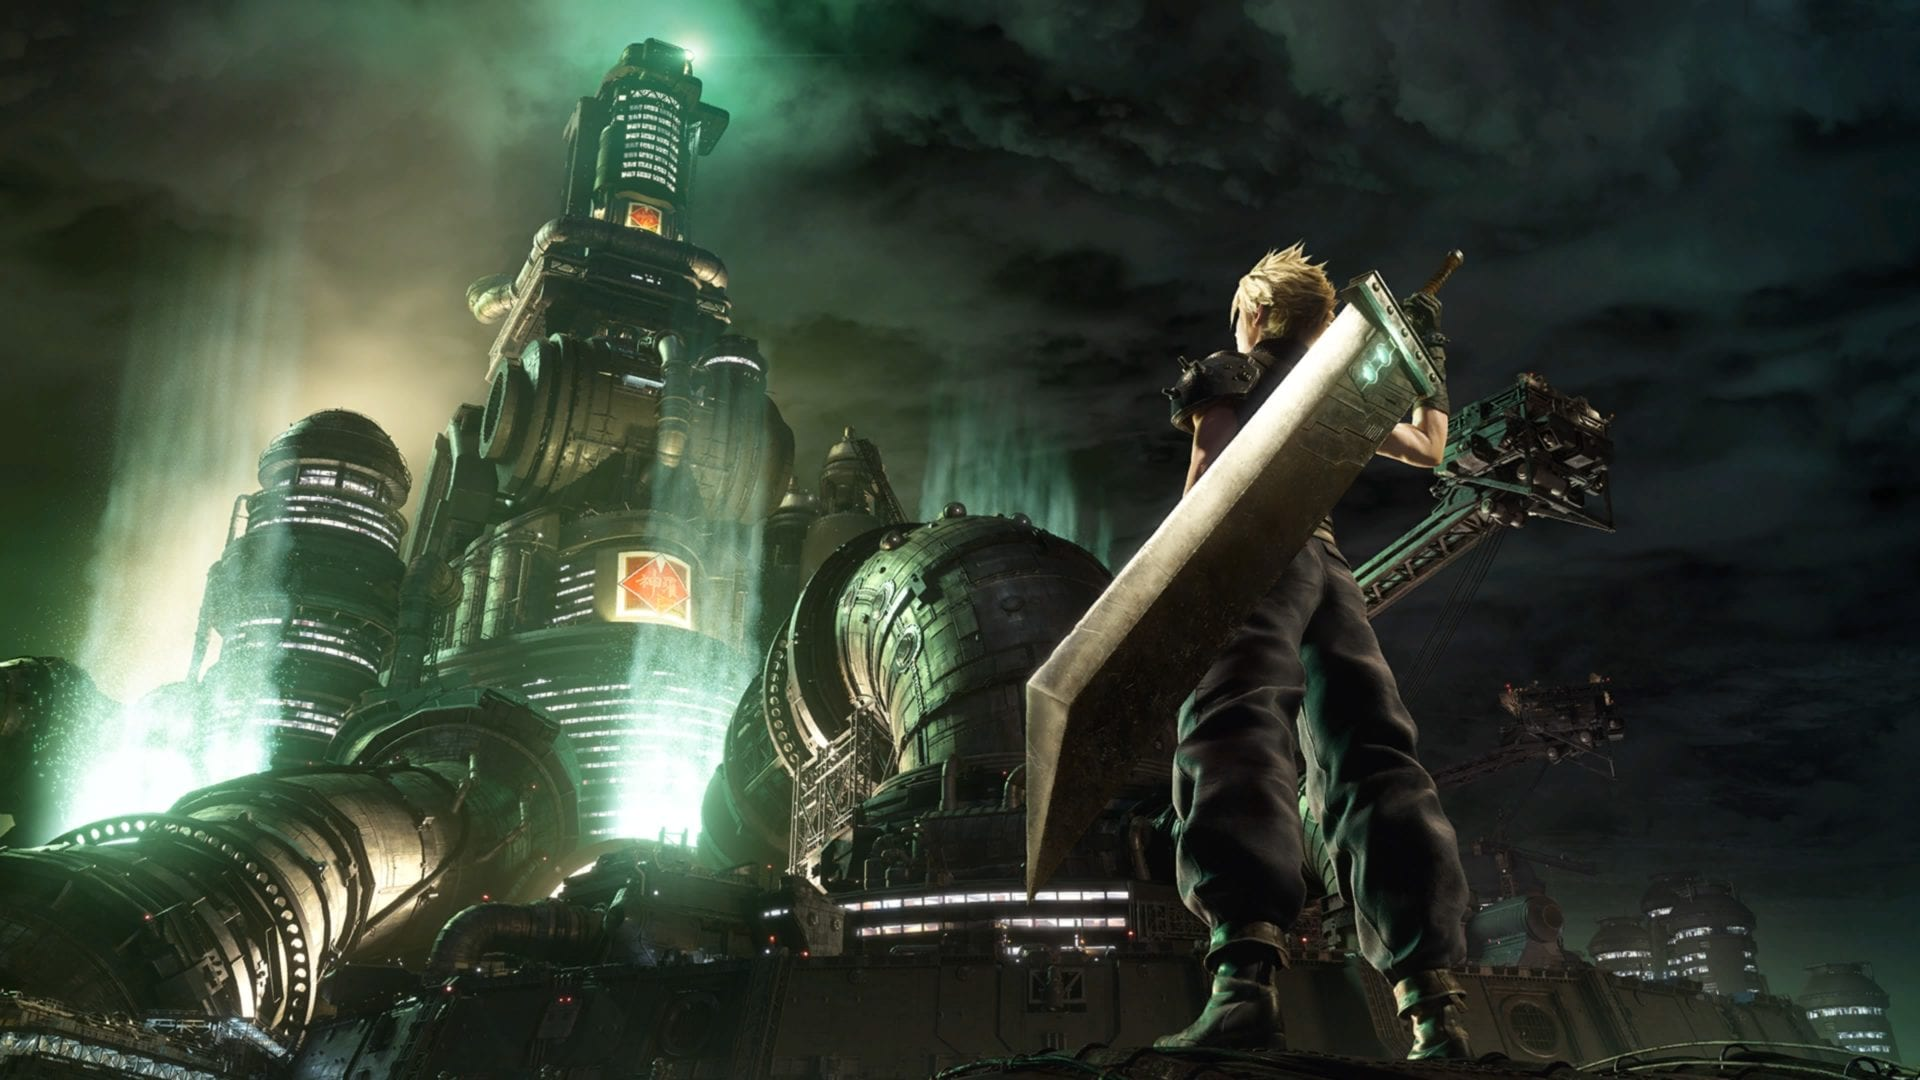 final fantasy 7 remake, manuscripts